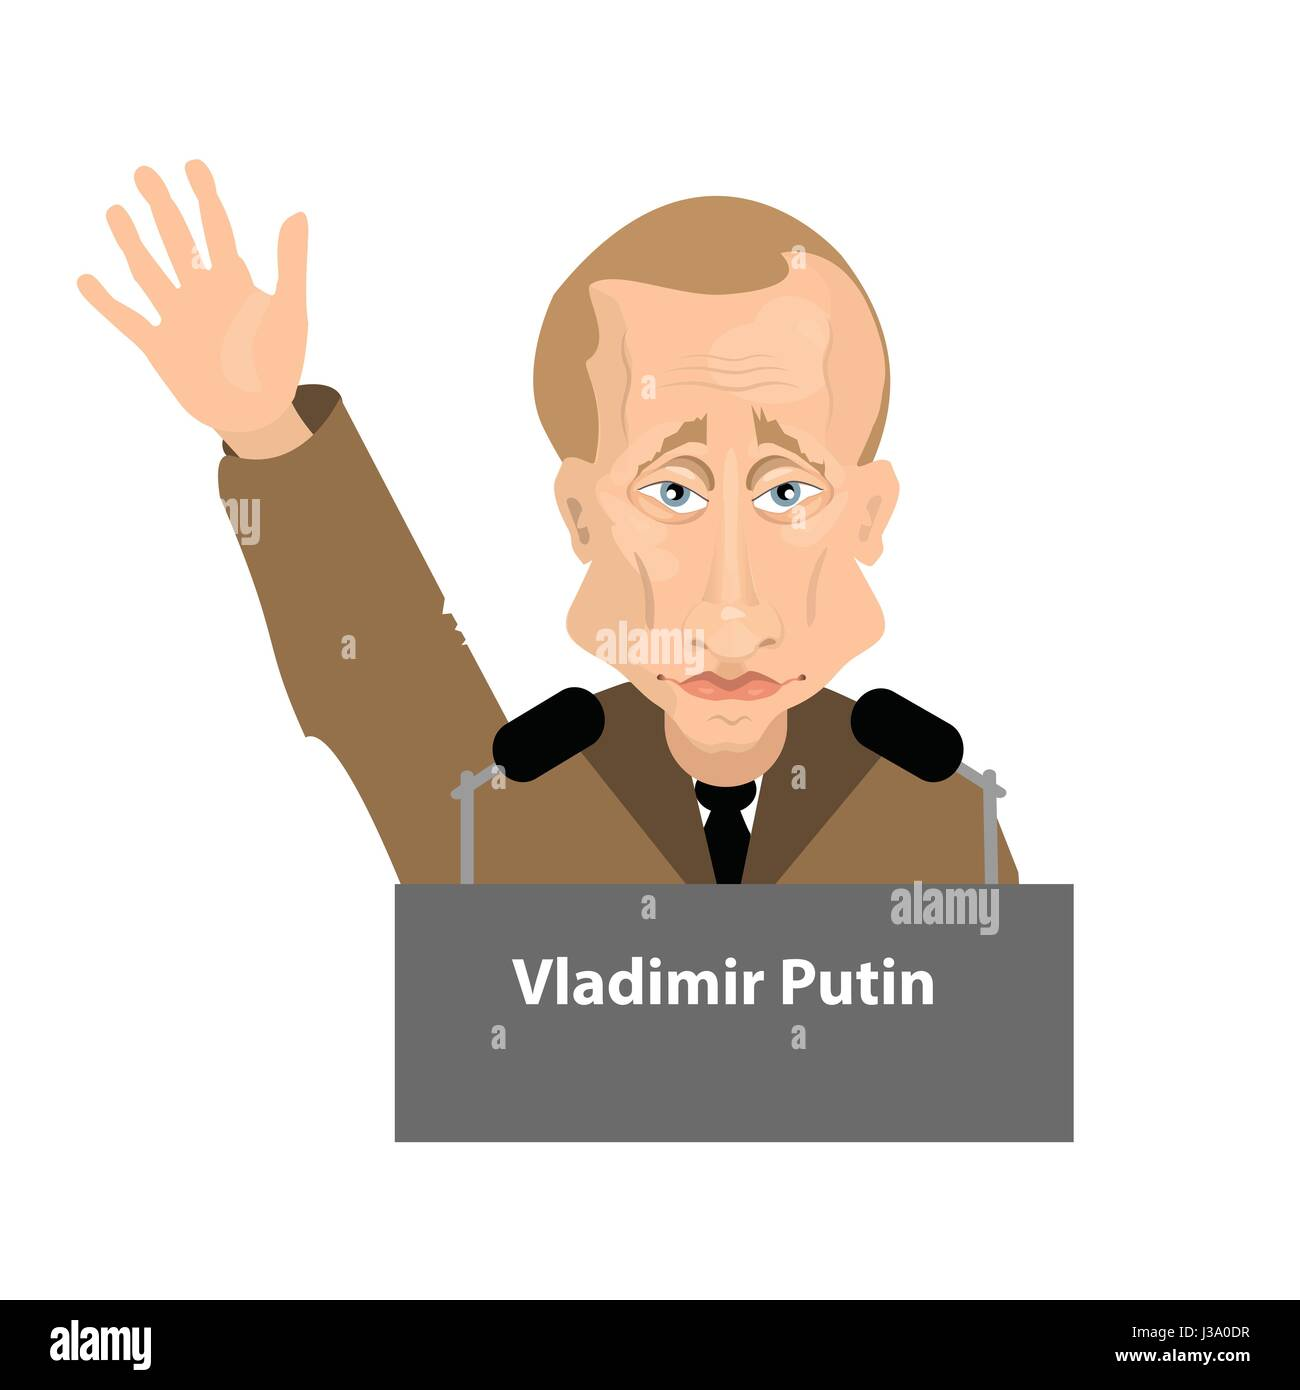 Vladimir Putin is the president of Russia. Illustration for your design. With his hand raised up. Greetings behind - Stock Image